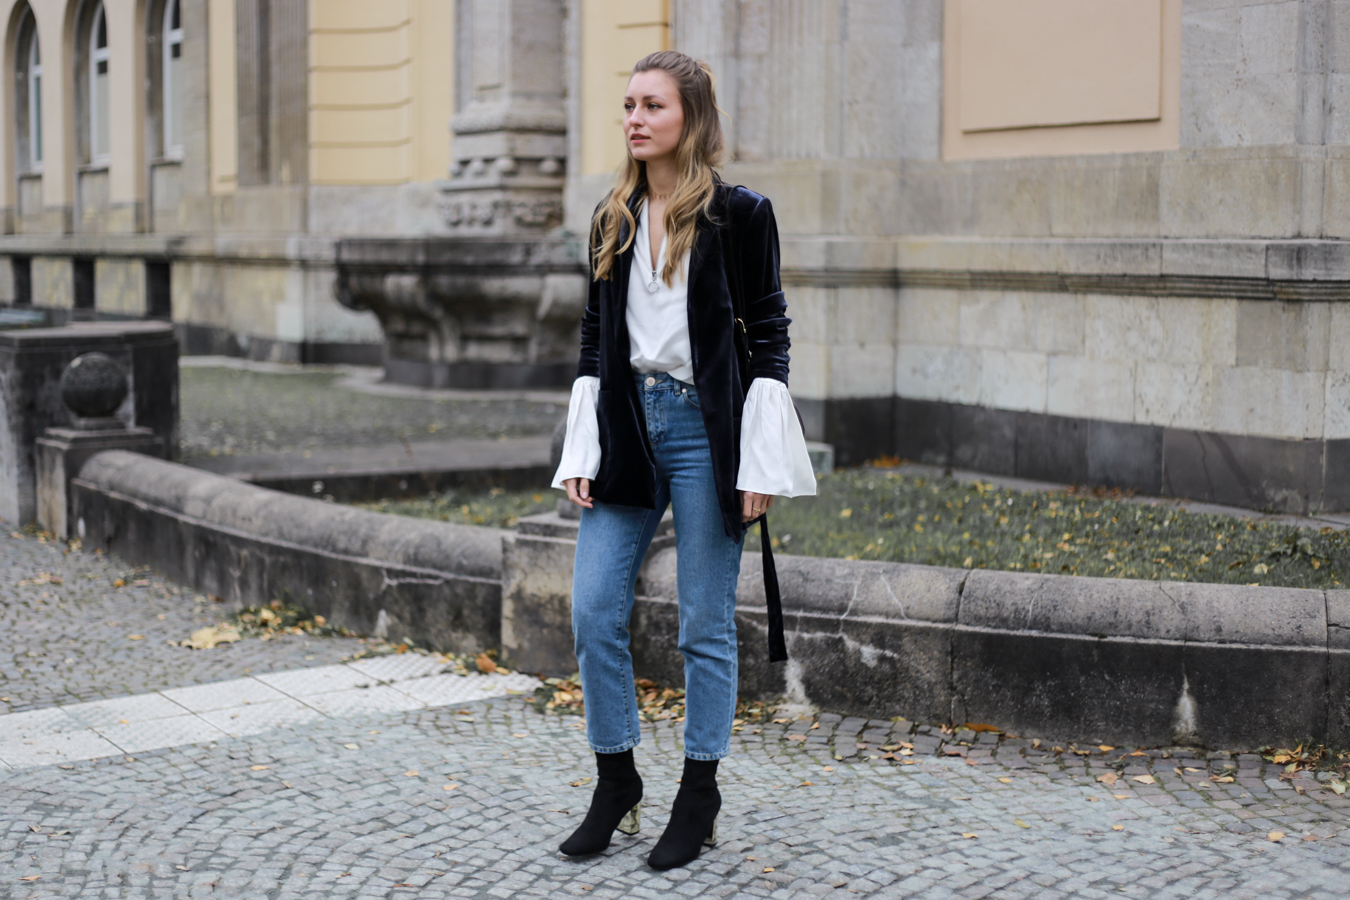 other-stories-velvet-mom-jeans-outfit-livia-auer-6849